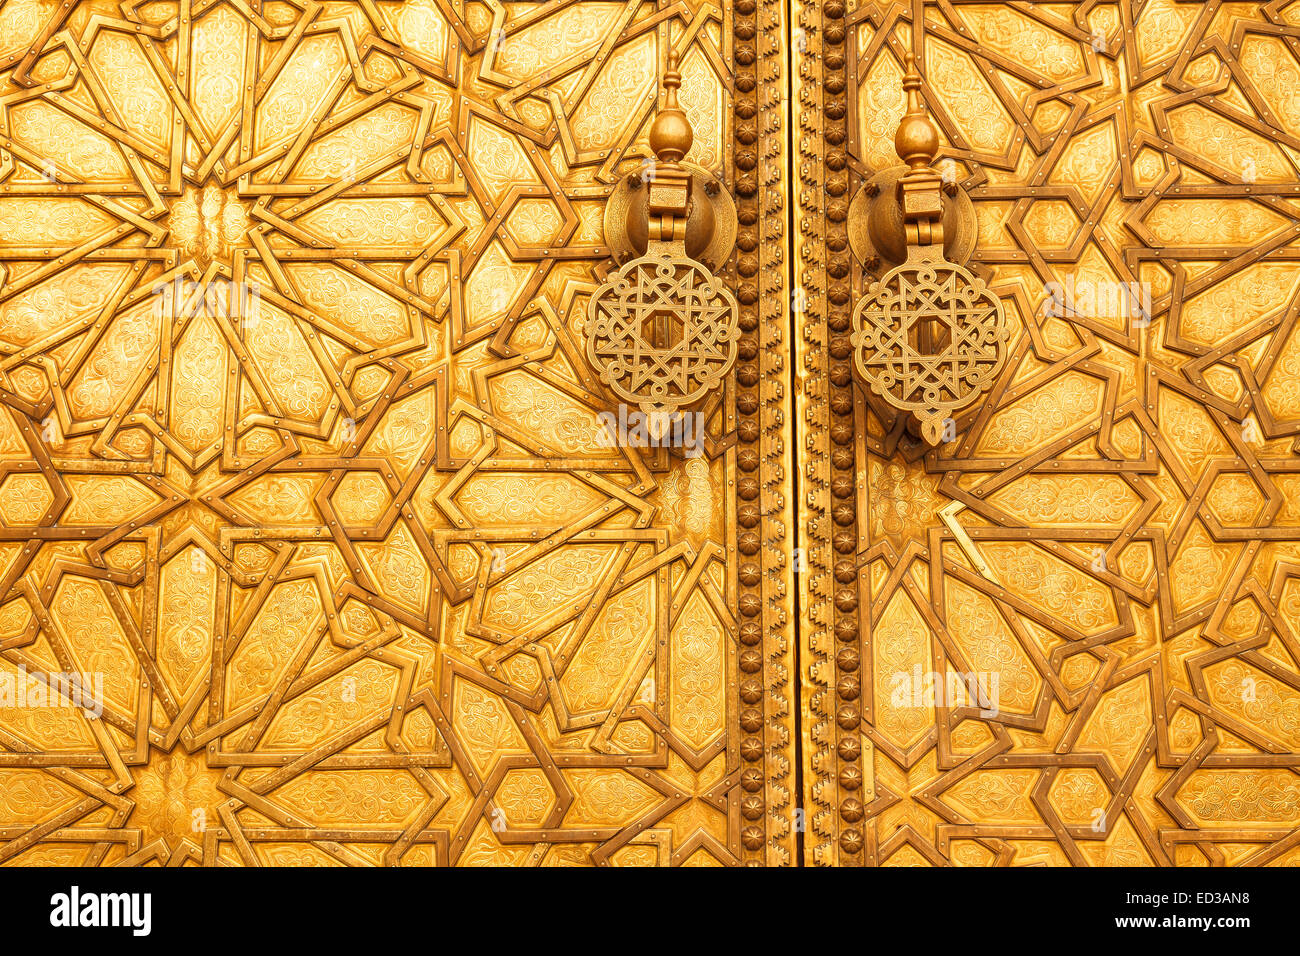 Golden doors. The grand entrance to the Royal Palace in Fez. Fez. Morocco. North Africa. Africa  sc 1 st  Alamy & Golden doors. The grand entrance to the Royal Palace in Fez. Fez ...